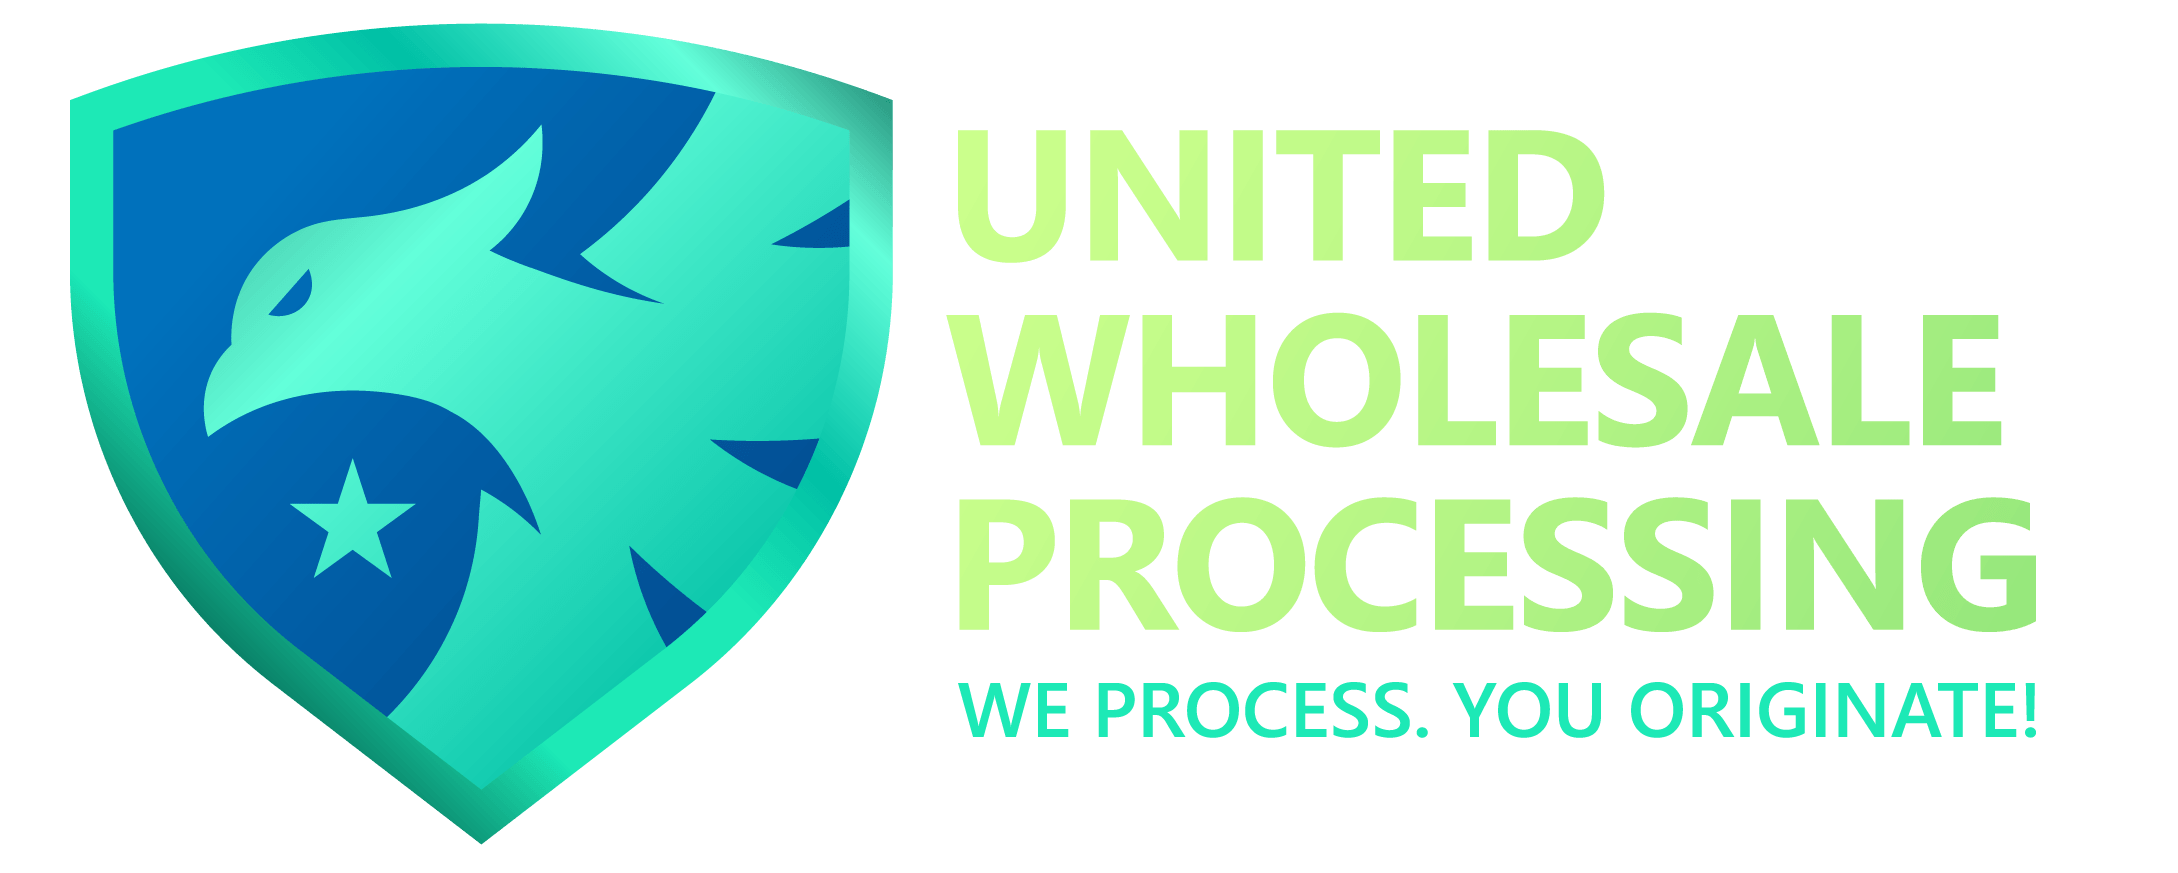 United Wholesale Processing